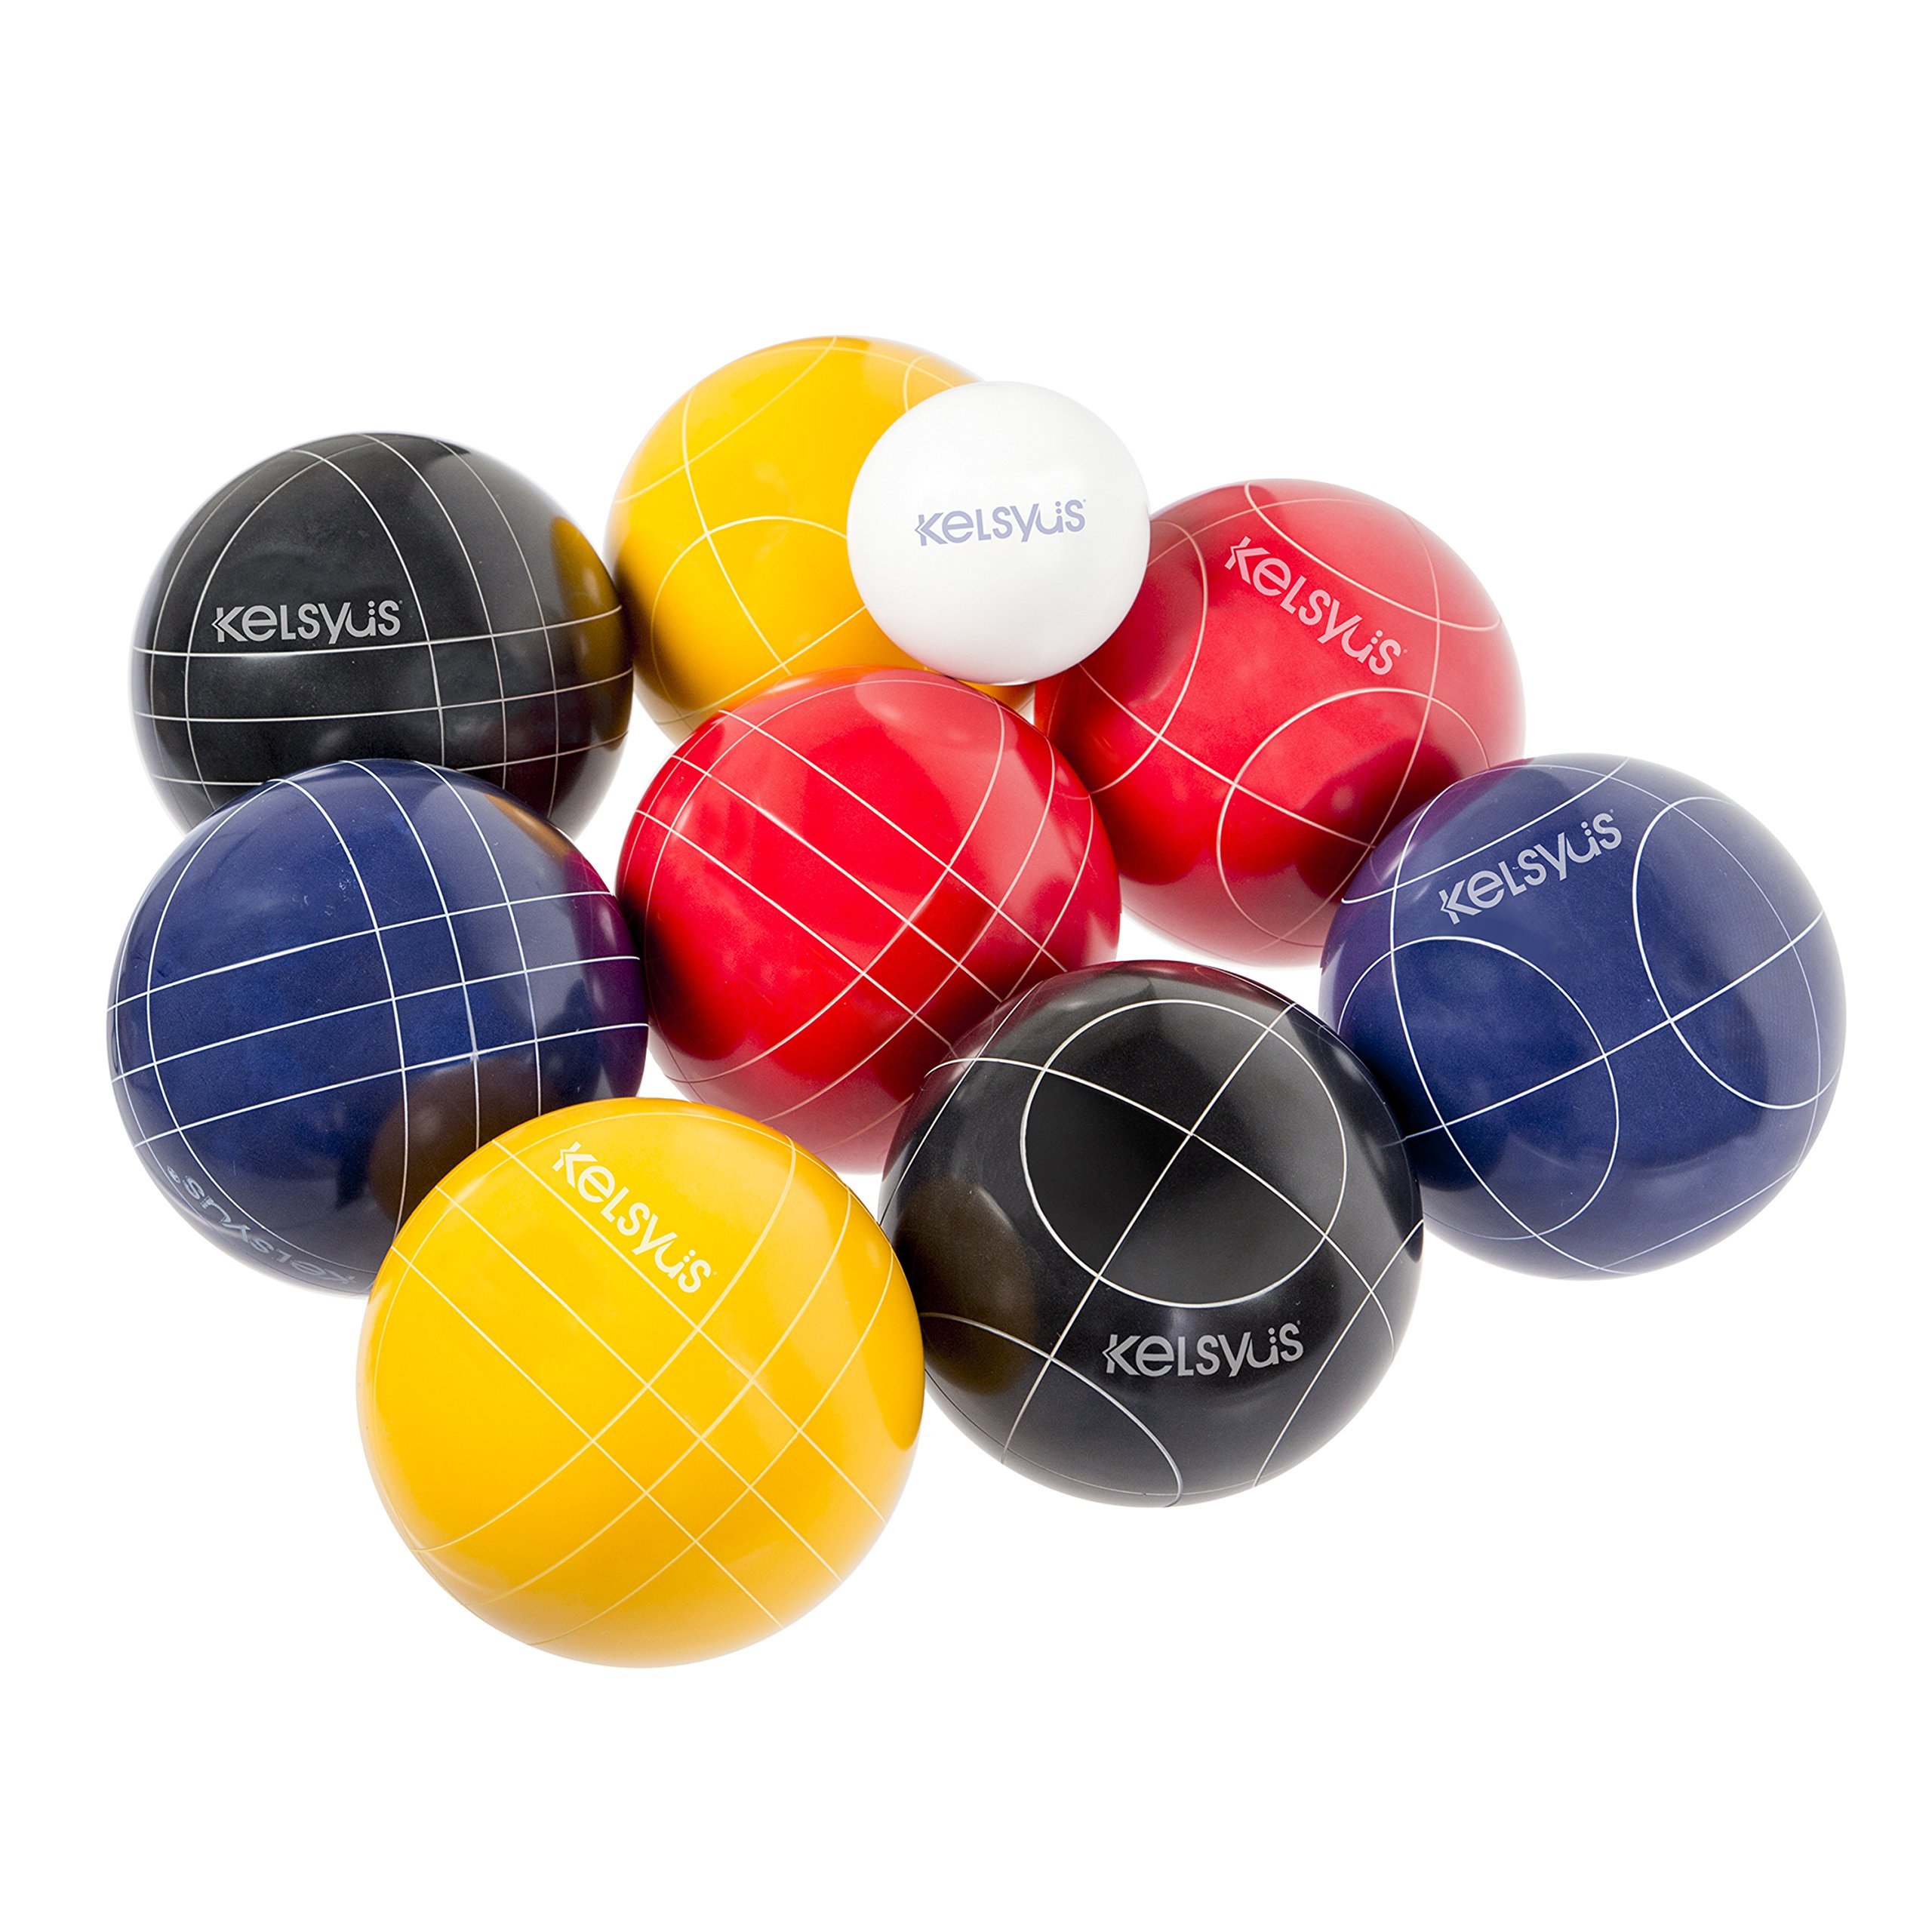 Kelsyus Premium Bocce Ball Game